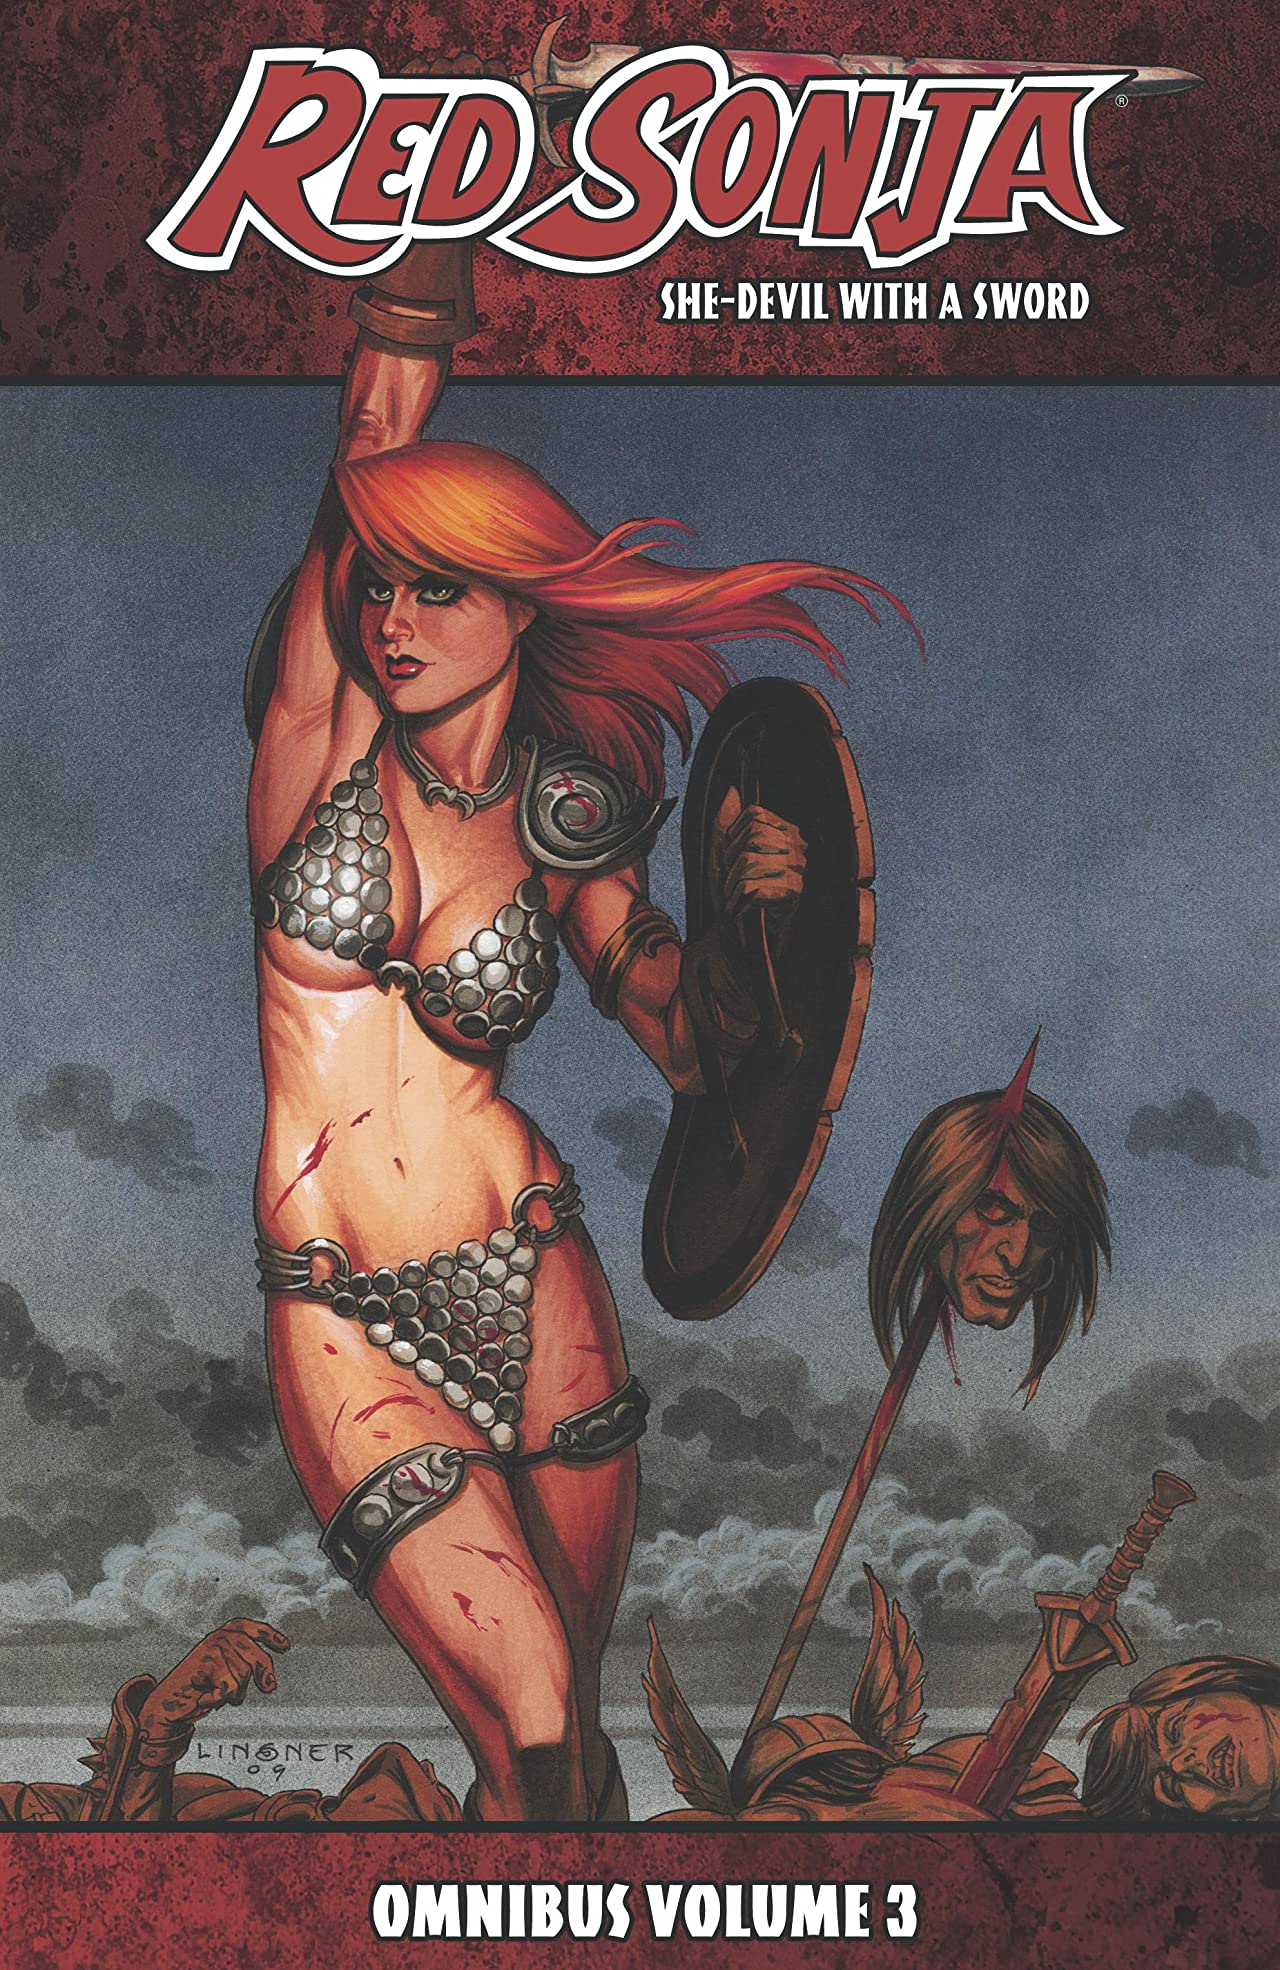 Red Sonja: She-Devil With A Sword - Omnibus Vol. 3